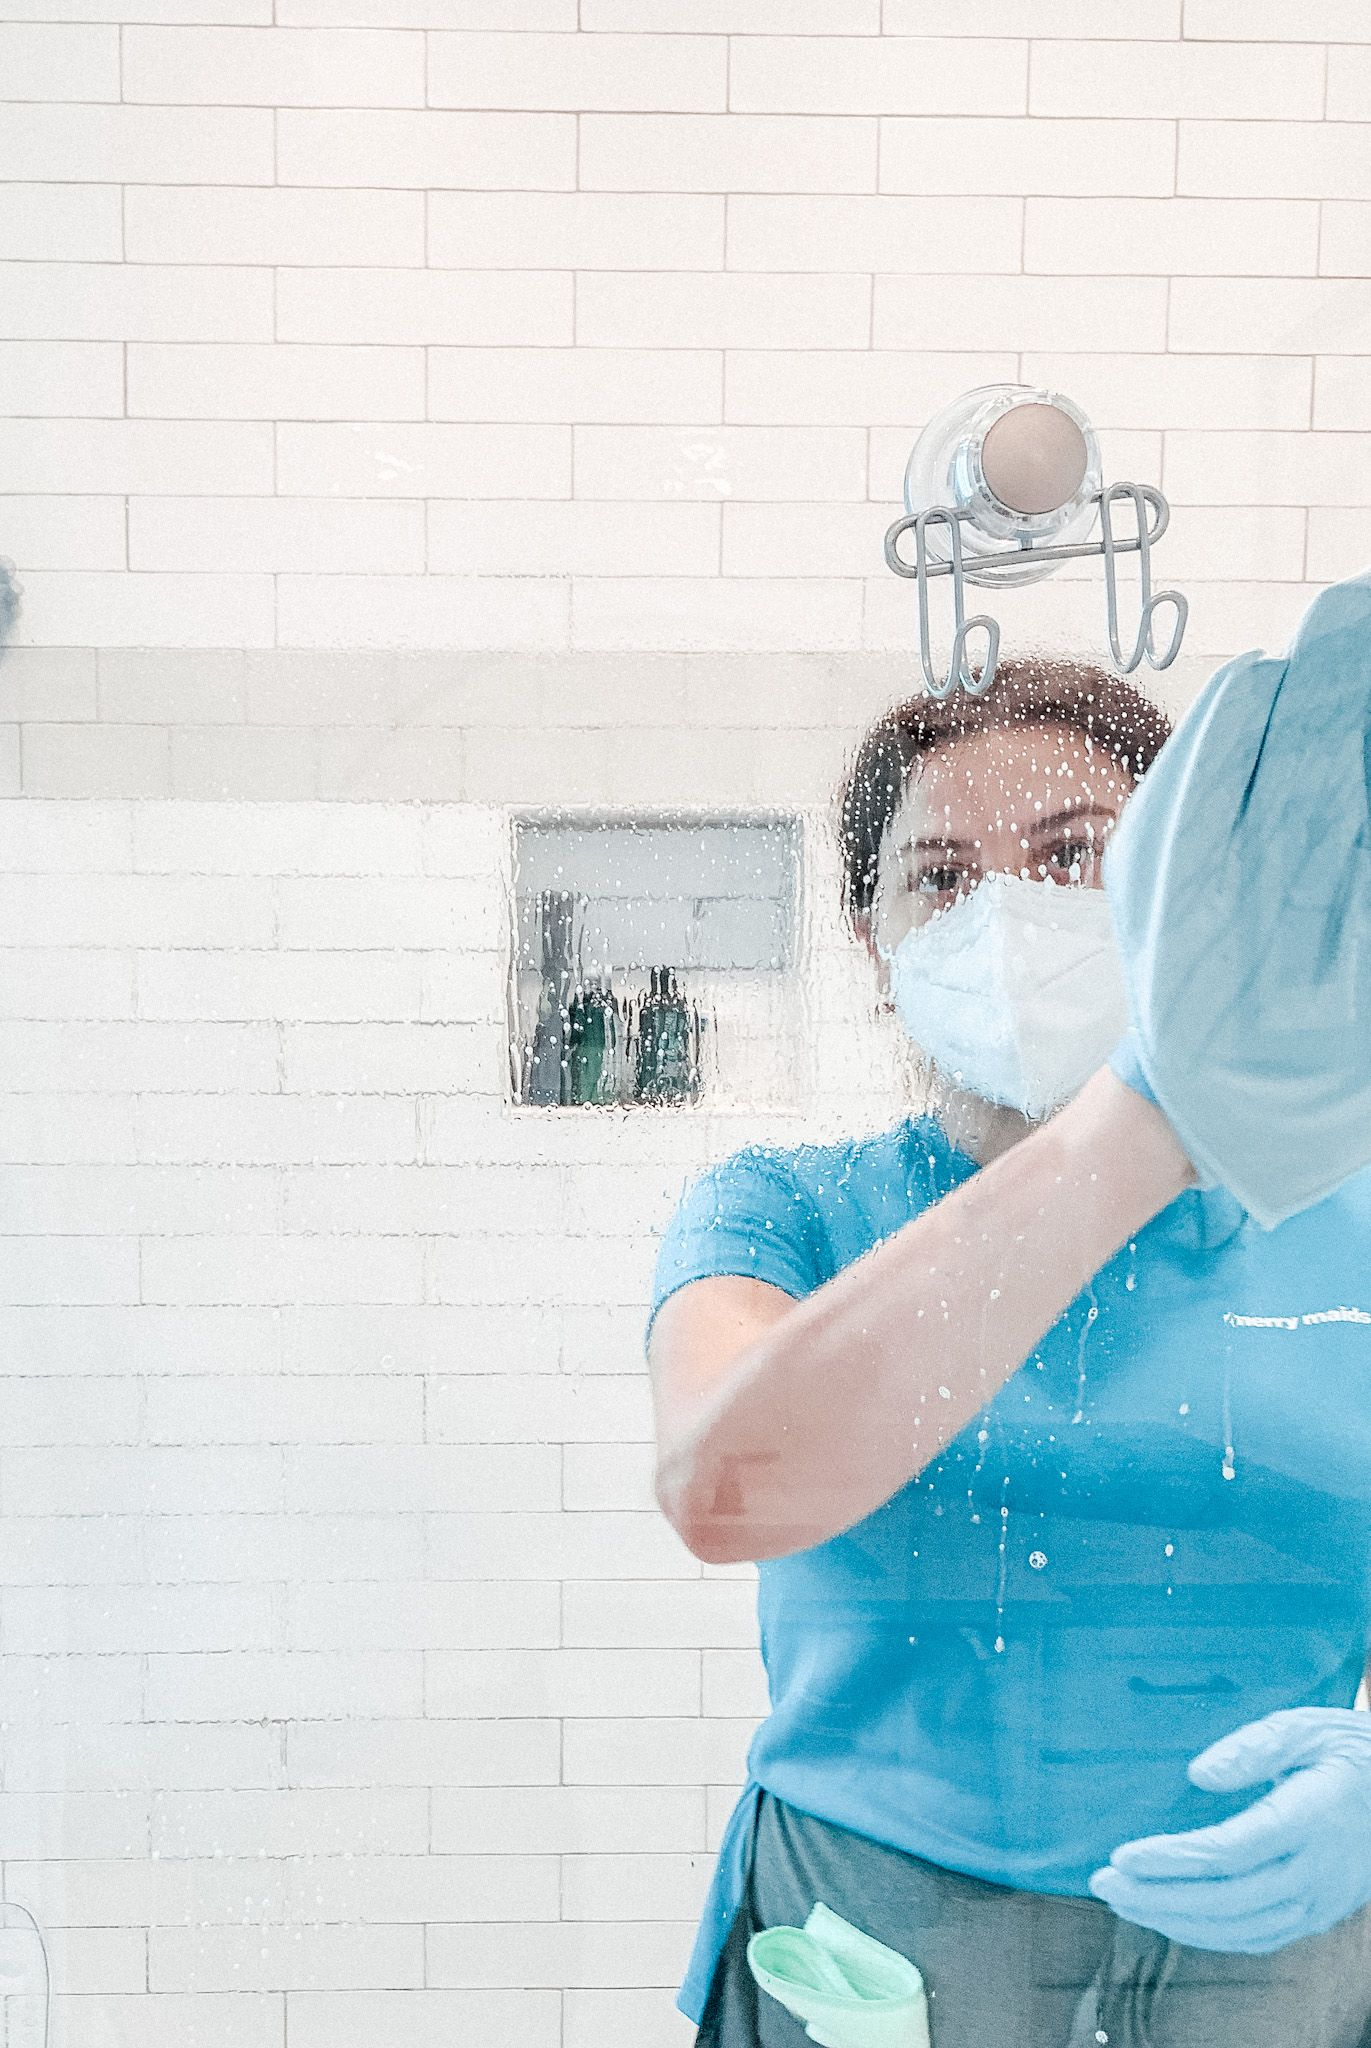 Merry Maids team member wearing PPE and disinfecting glass inside a bathroom